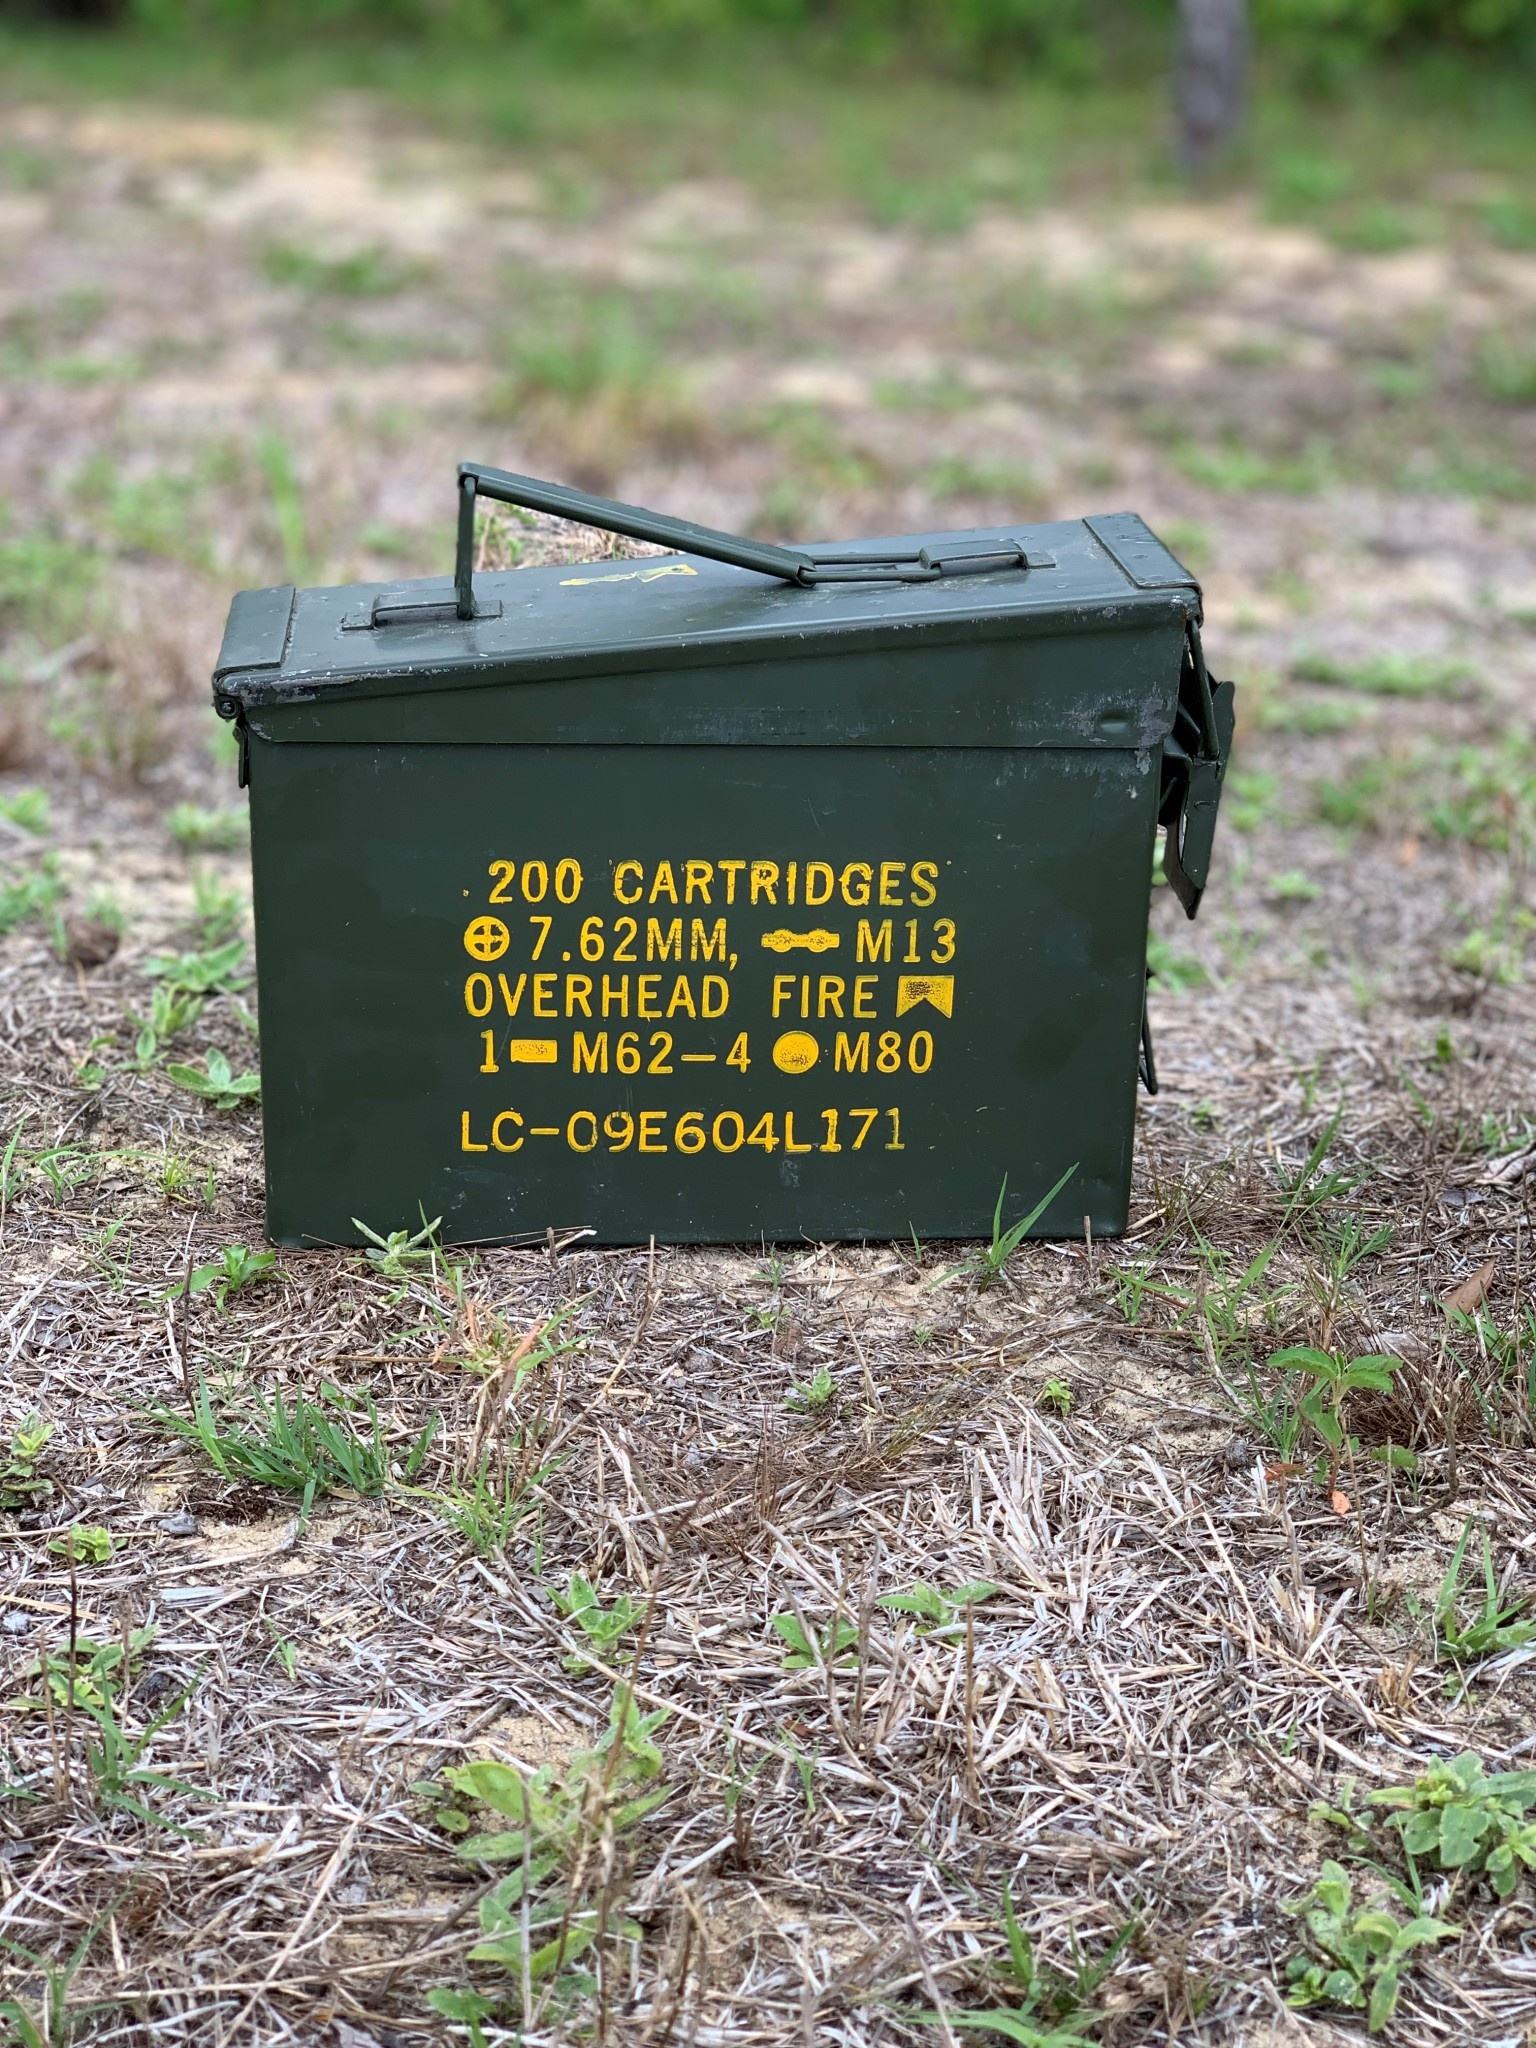 .30 Caliber Ammo Cans